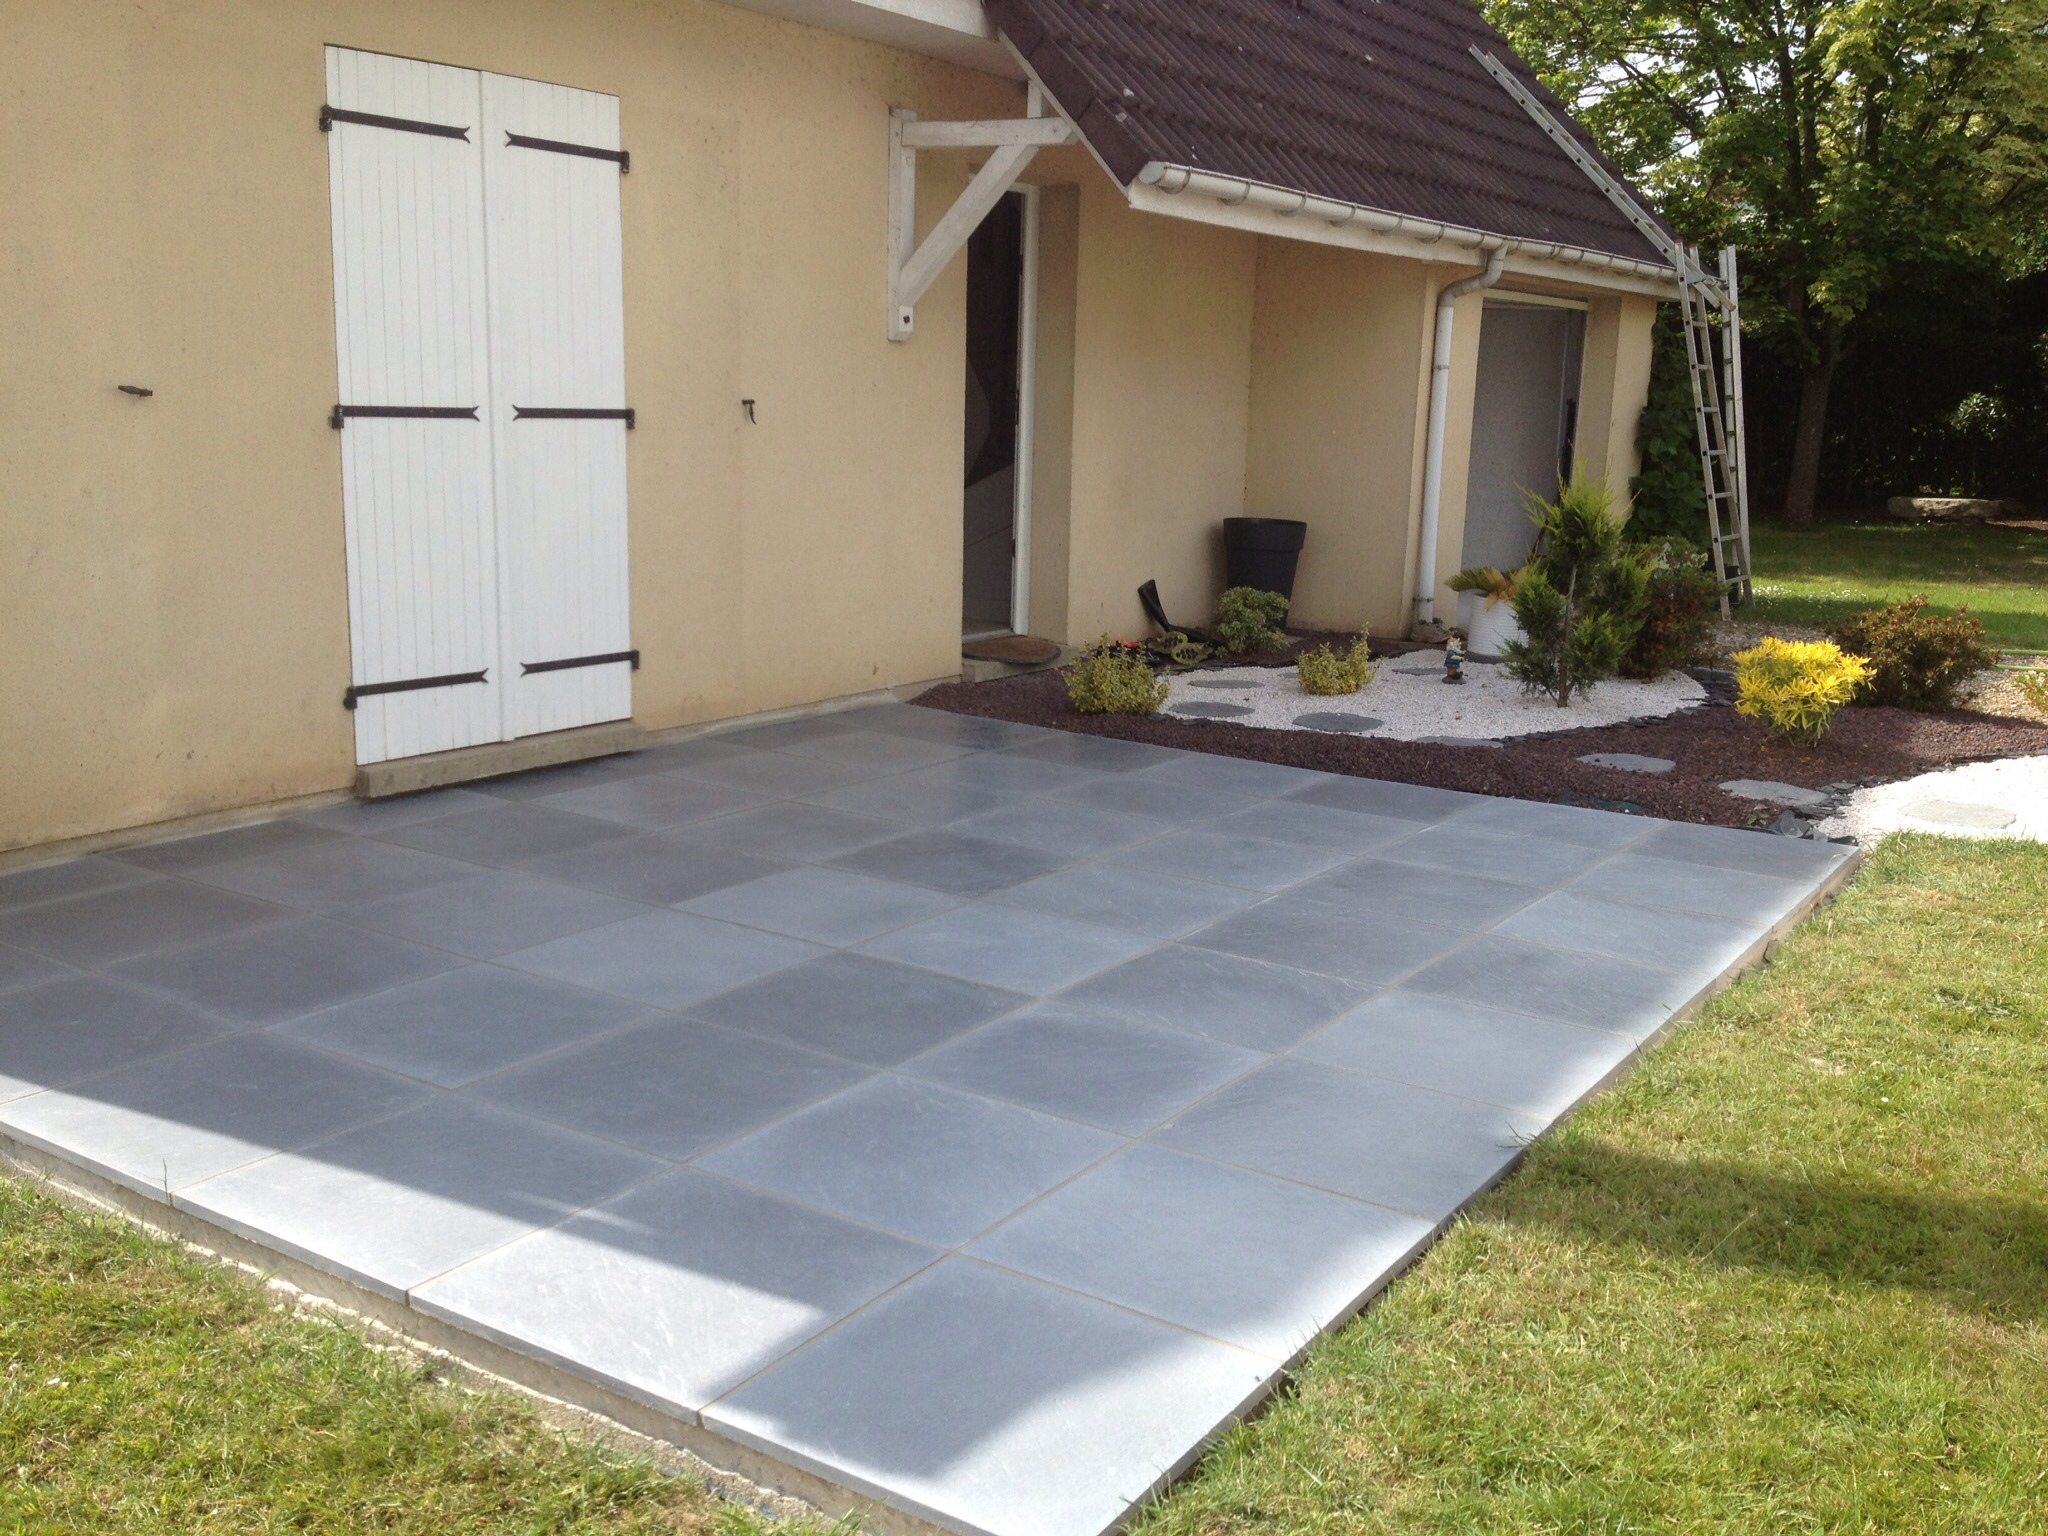 Terrasse bois sur plot beton for Dalles de terrasse sur plots